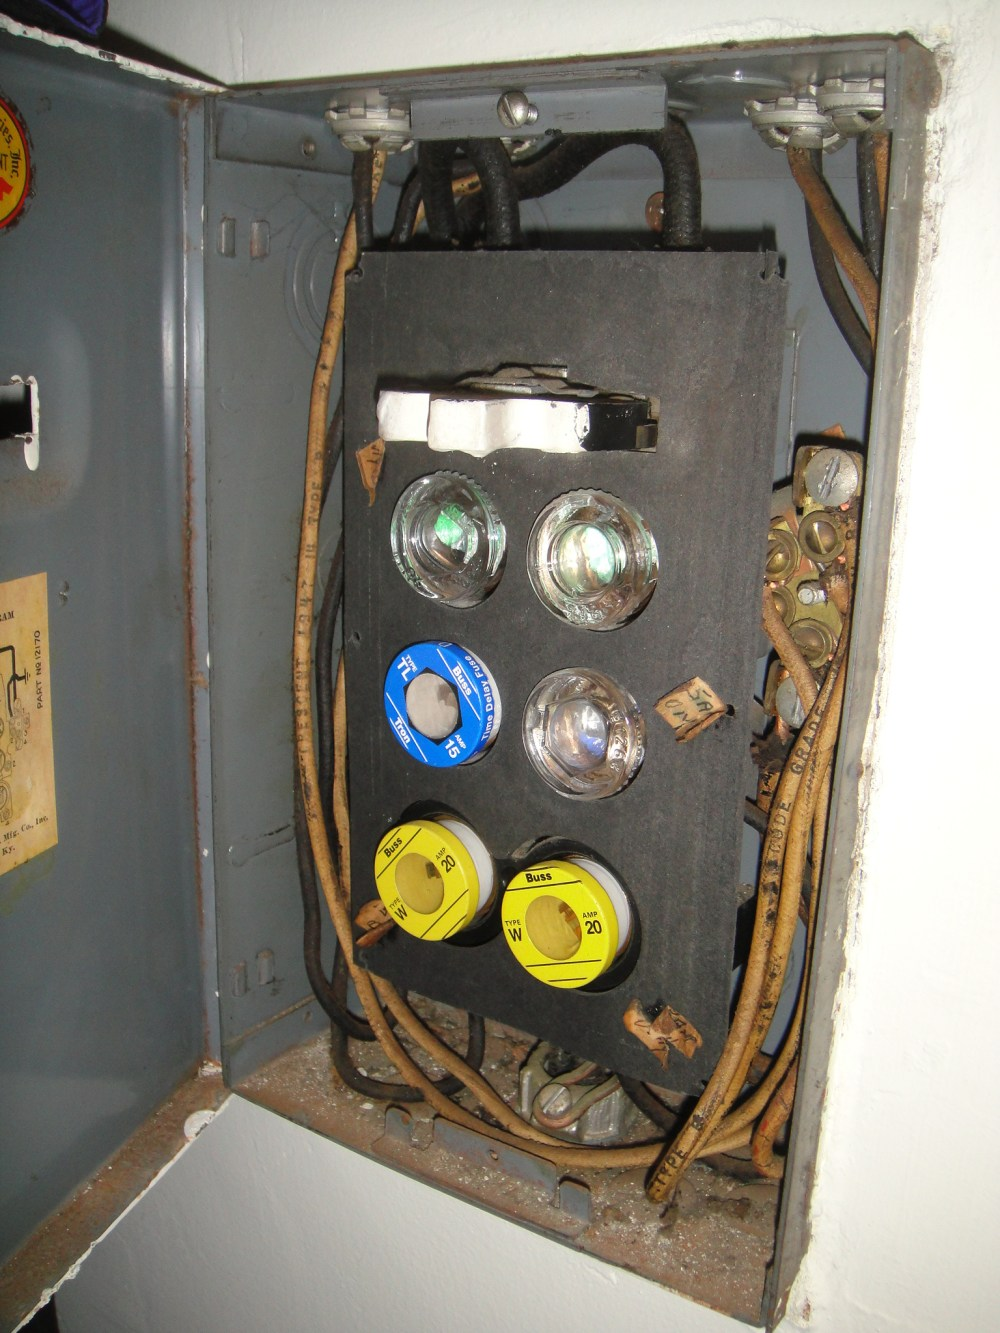 medium resolution of amp breaker fuse box wiring diagram centrebreakers prevent house fires home inspector san diegonew circuit breakers